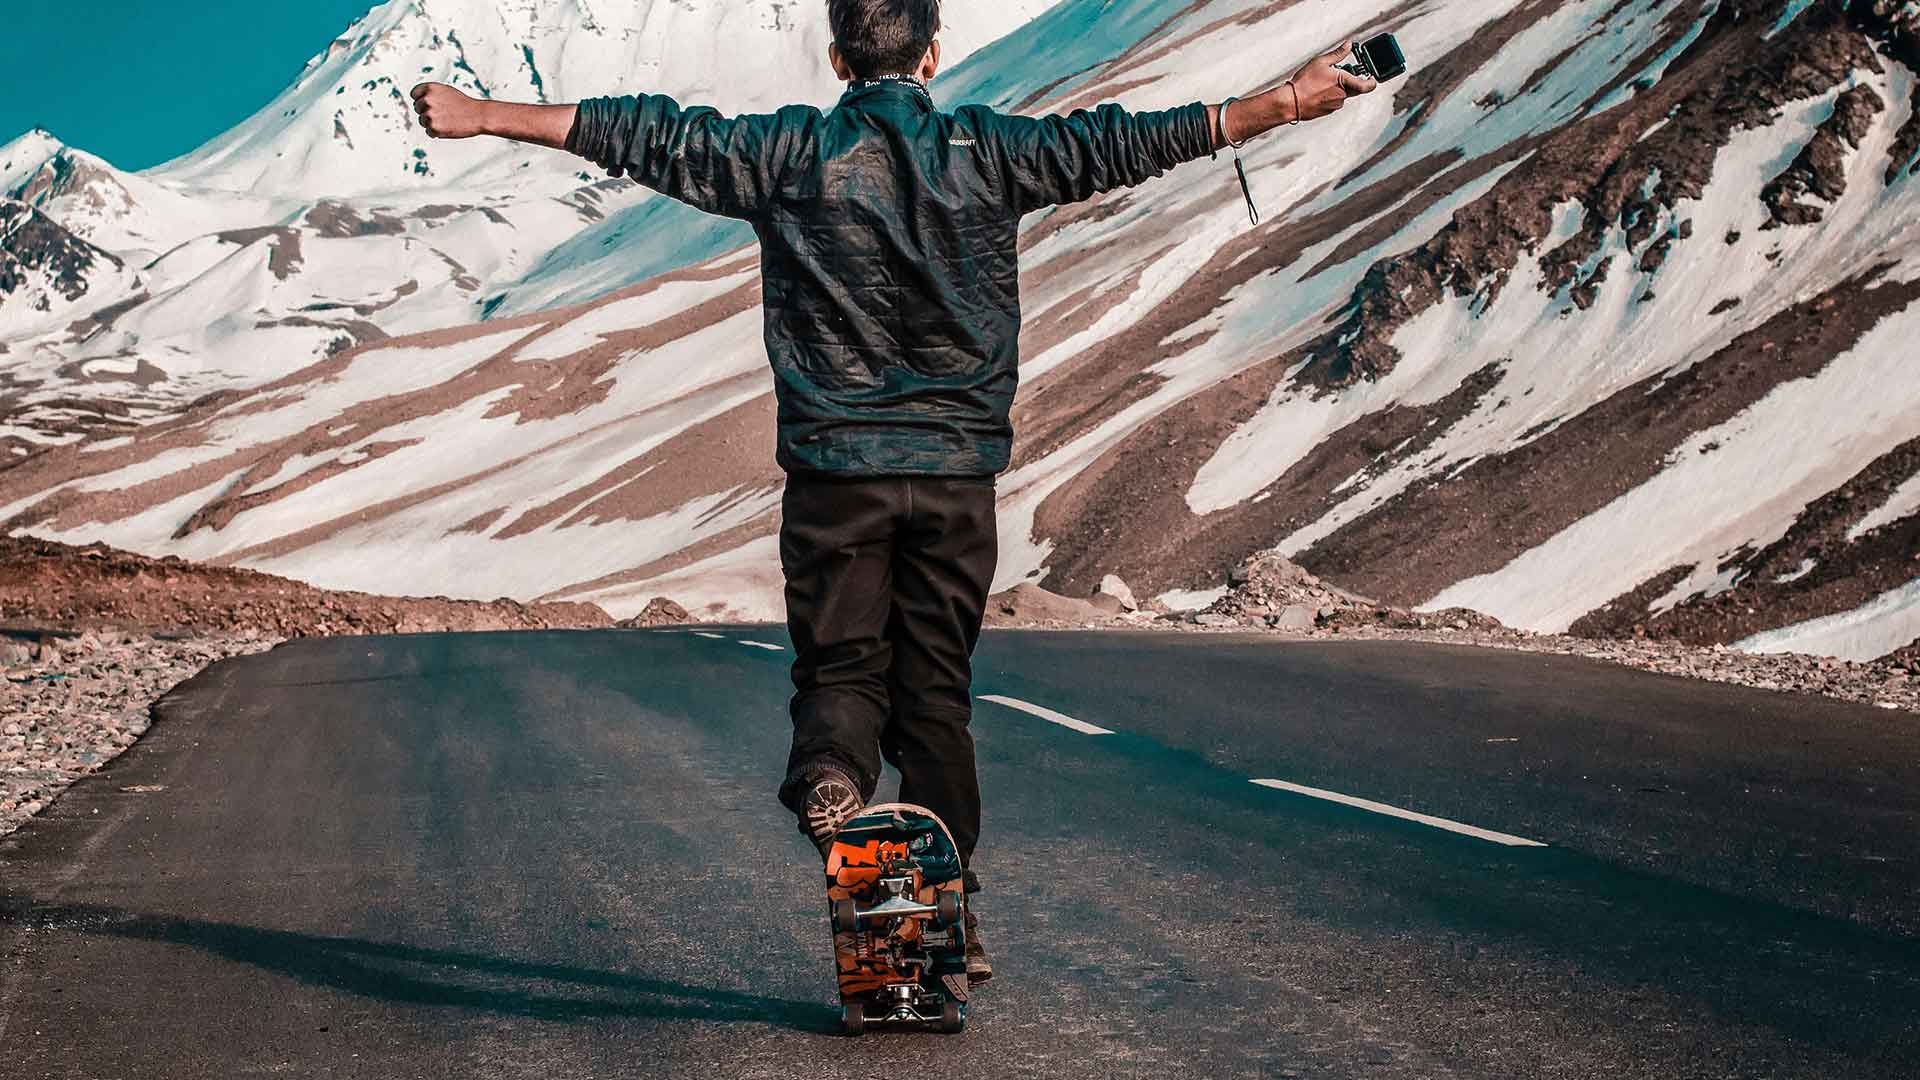 Amazing new post about skateboarding